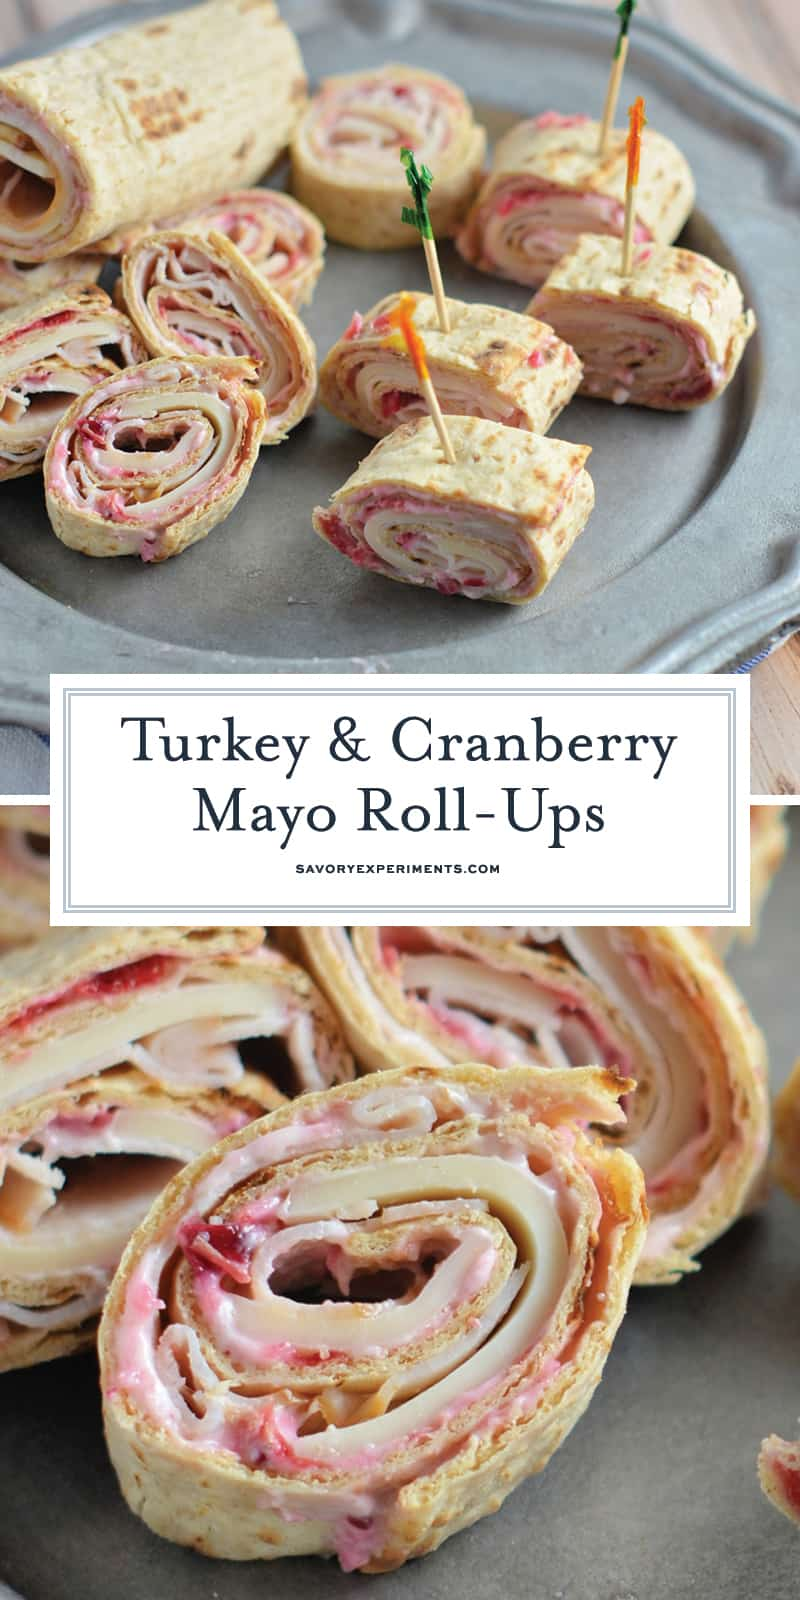 Turkey and Cranberry Mayo Roll-Ups- the perfect way to use your Thanksgiving leftovers for a fresh and delicious meal on the go. #turkeyrollups #cranberrymayo #thanksgivingleftovers www.savoryexperiments.com